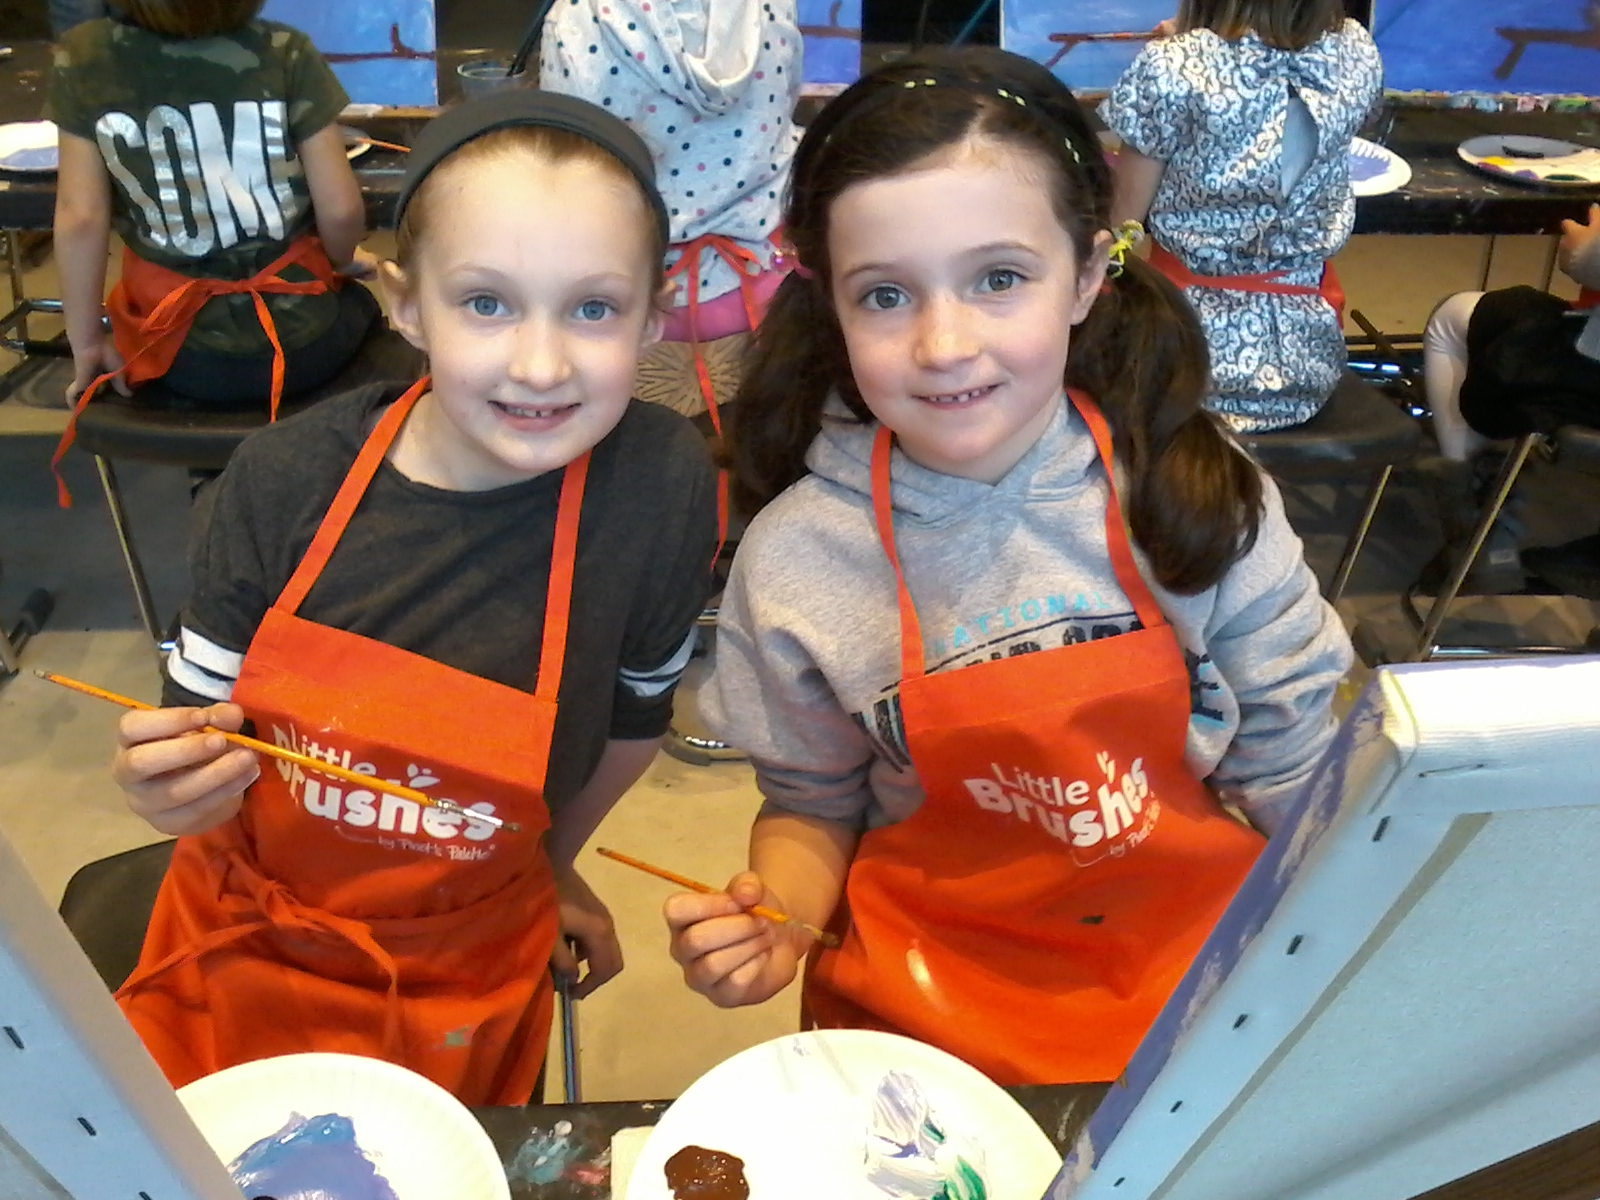 Week 1 - Little Brushes by Pinot's Palette Offers Kids' Art Enrichment Camps Summer 2017